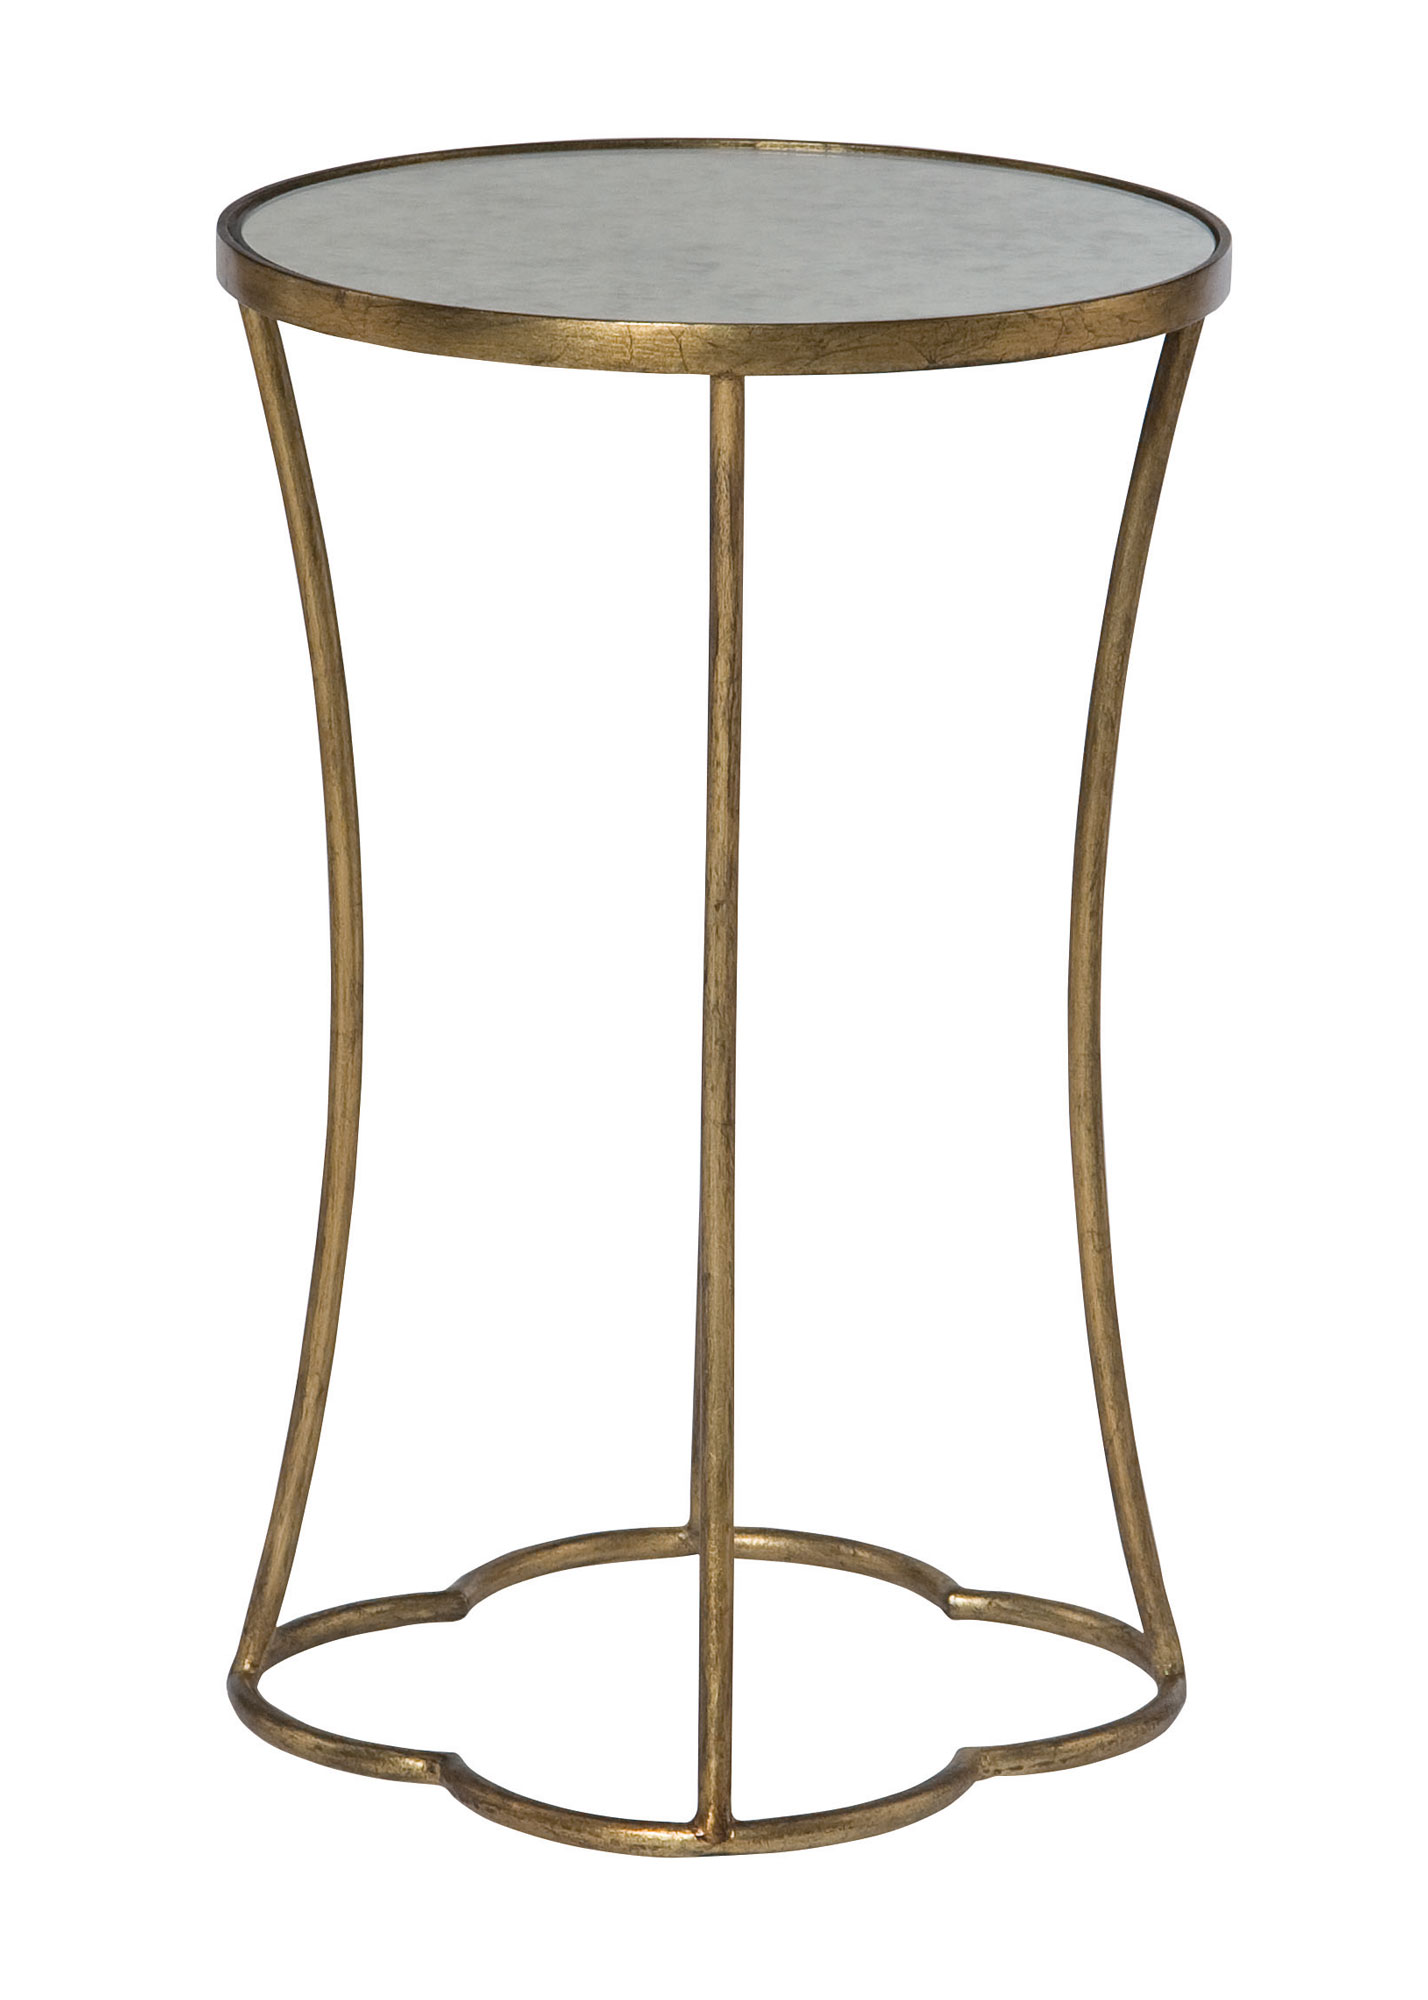 target bench table accent antique cabinet gold distressed round threshold and room glynn foyer ott living furniture white metal tables decorative storage glass tray modern for